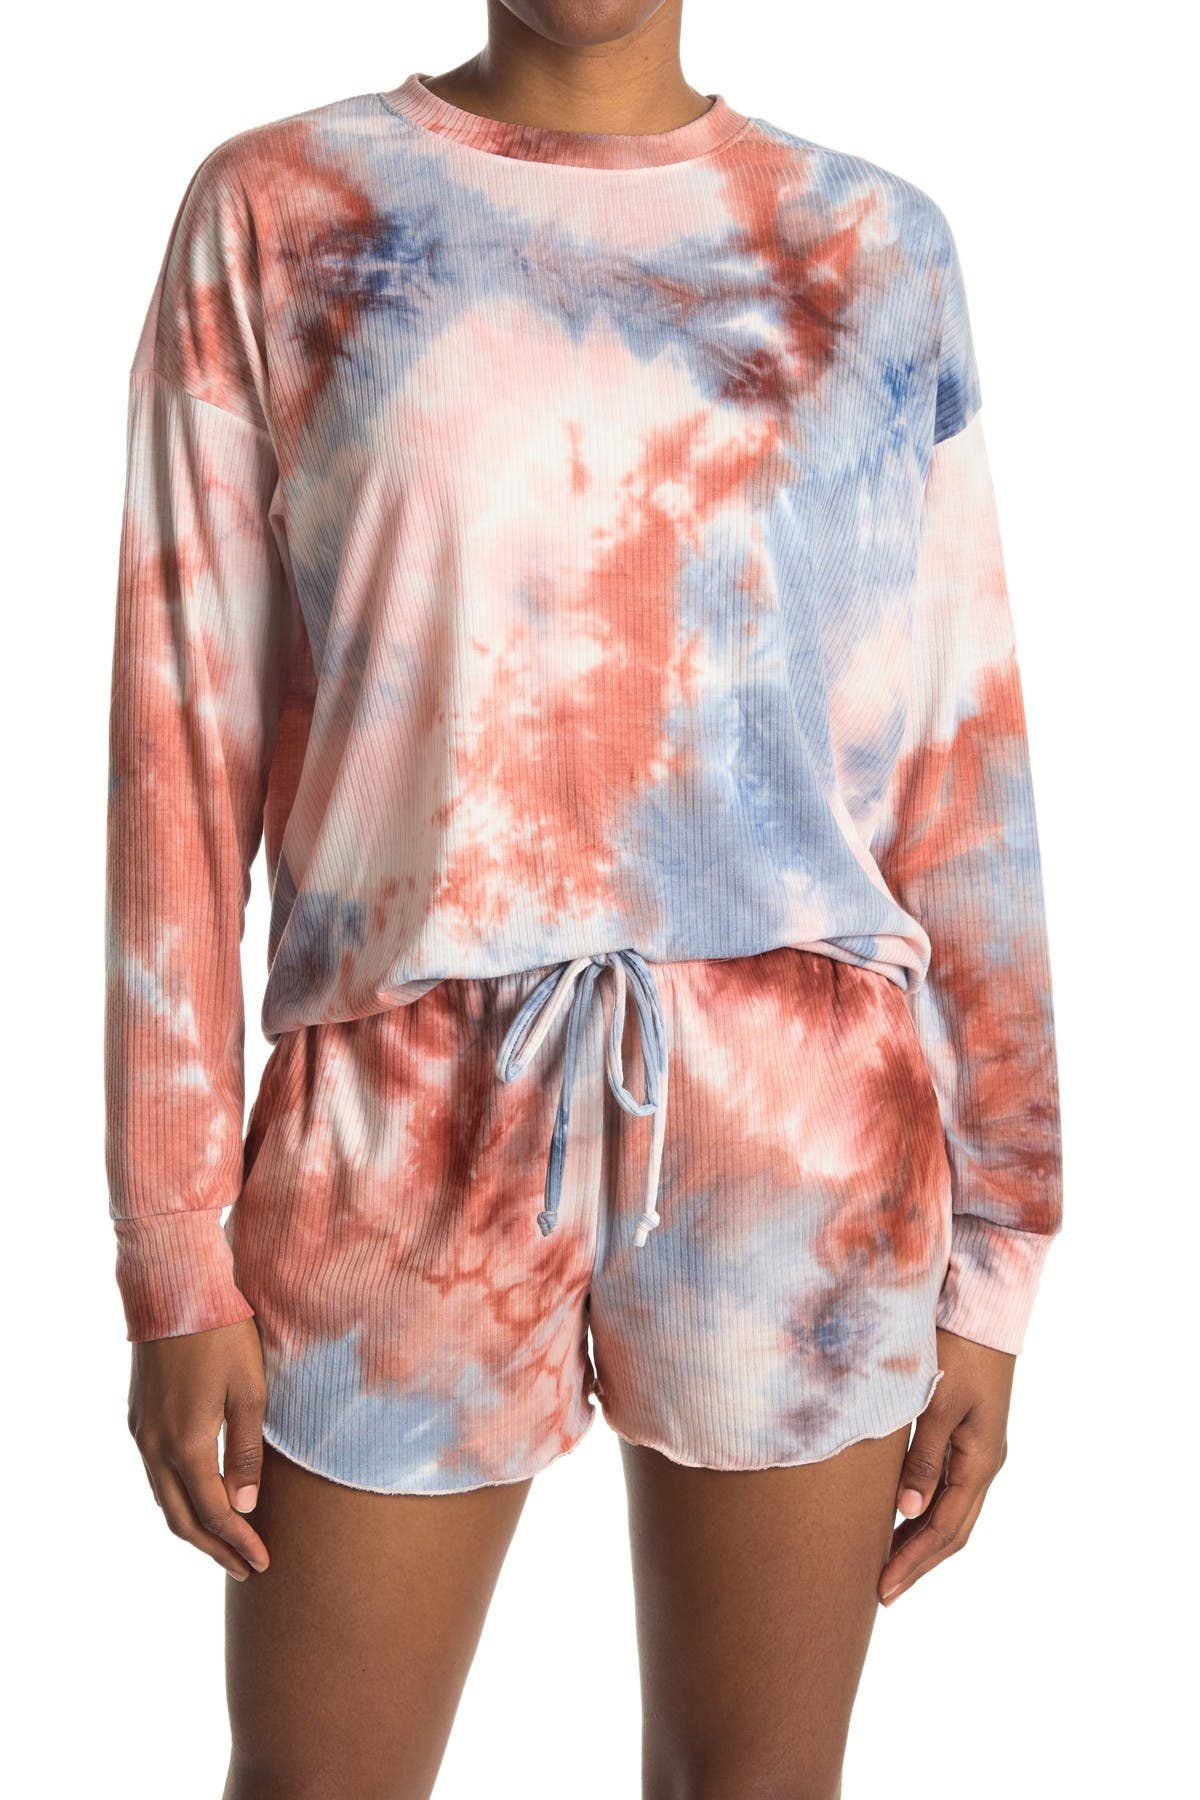 Image of Socialite Tie Dye Oversized Pullover